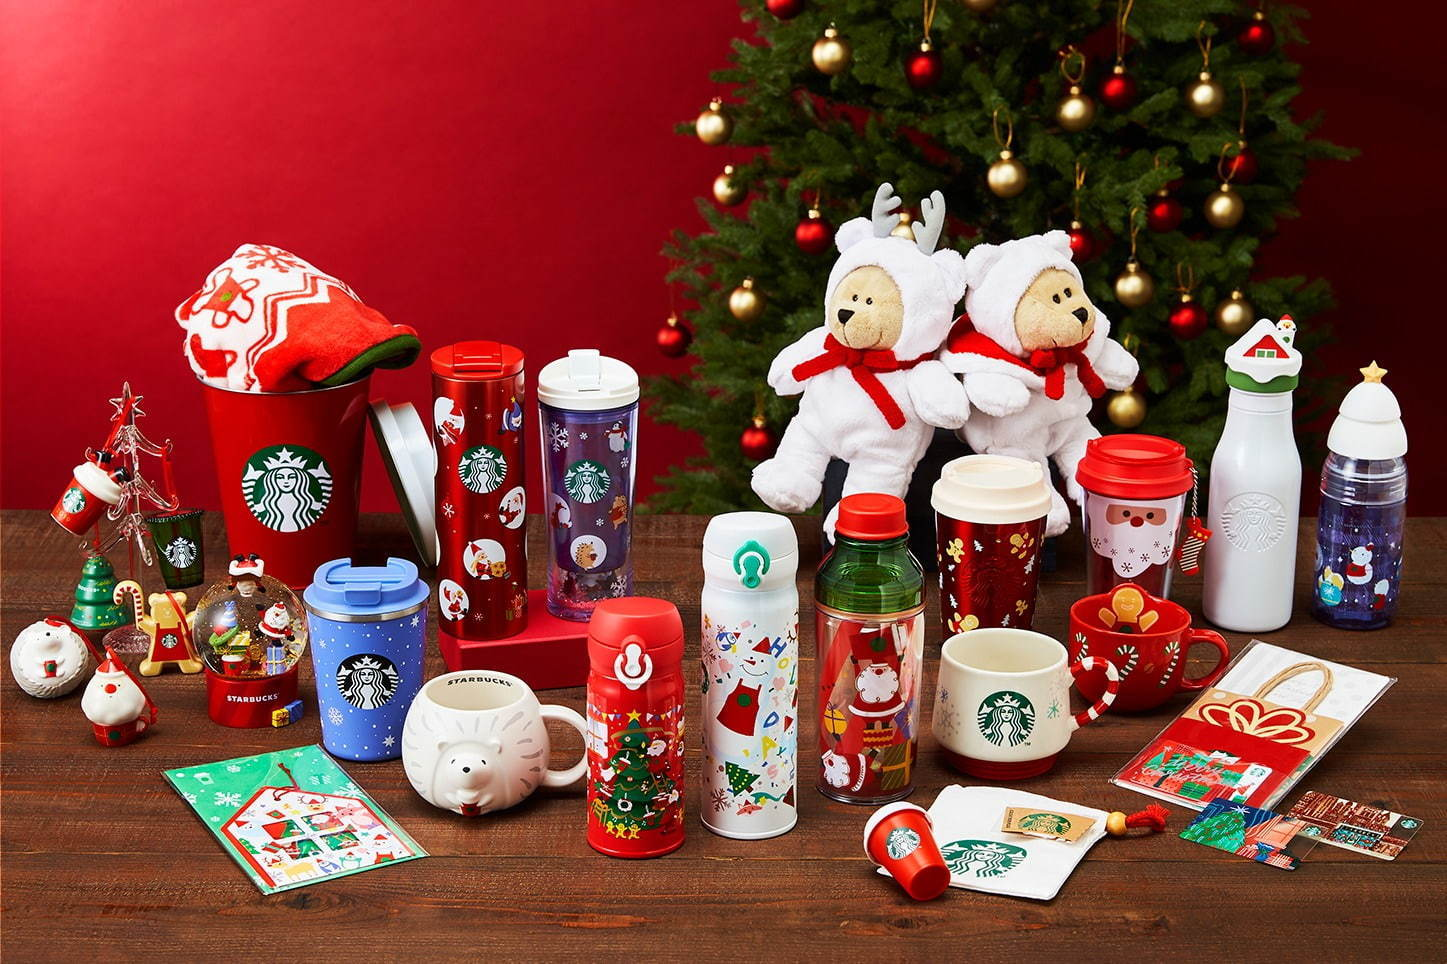 Starbucks Japan Christmas Tumbler and Mug 2019